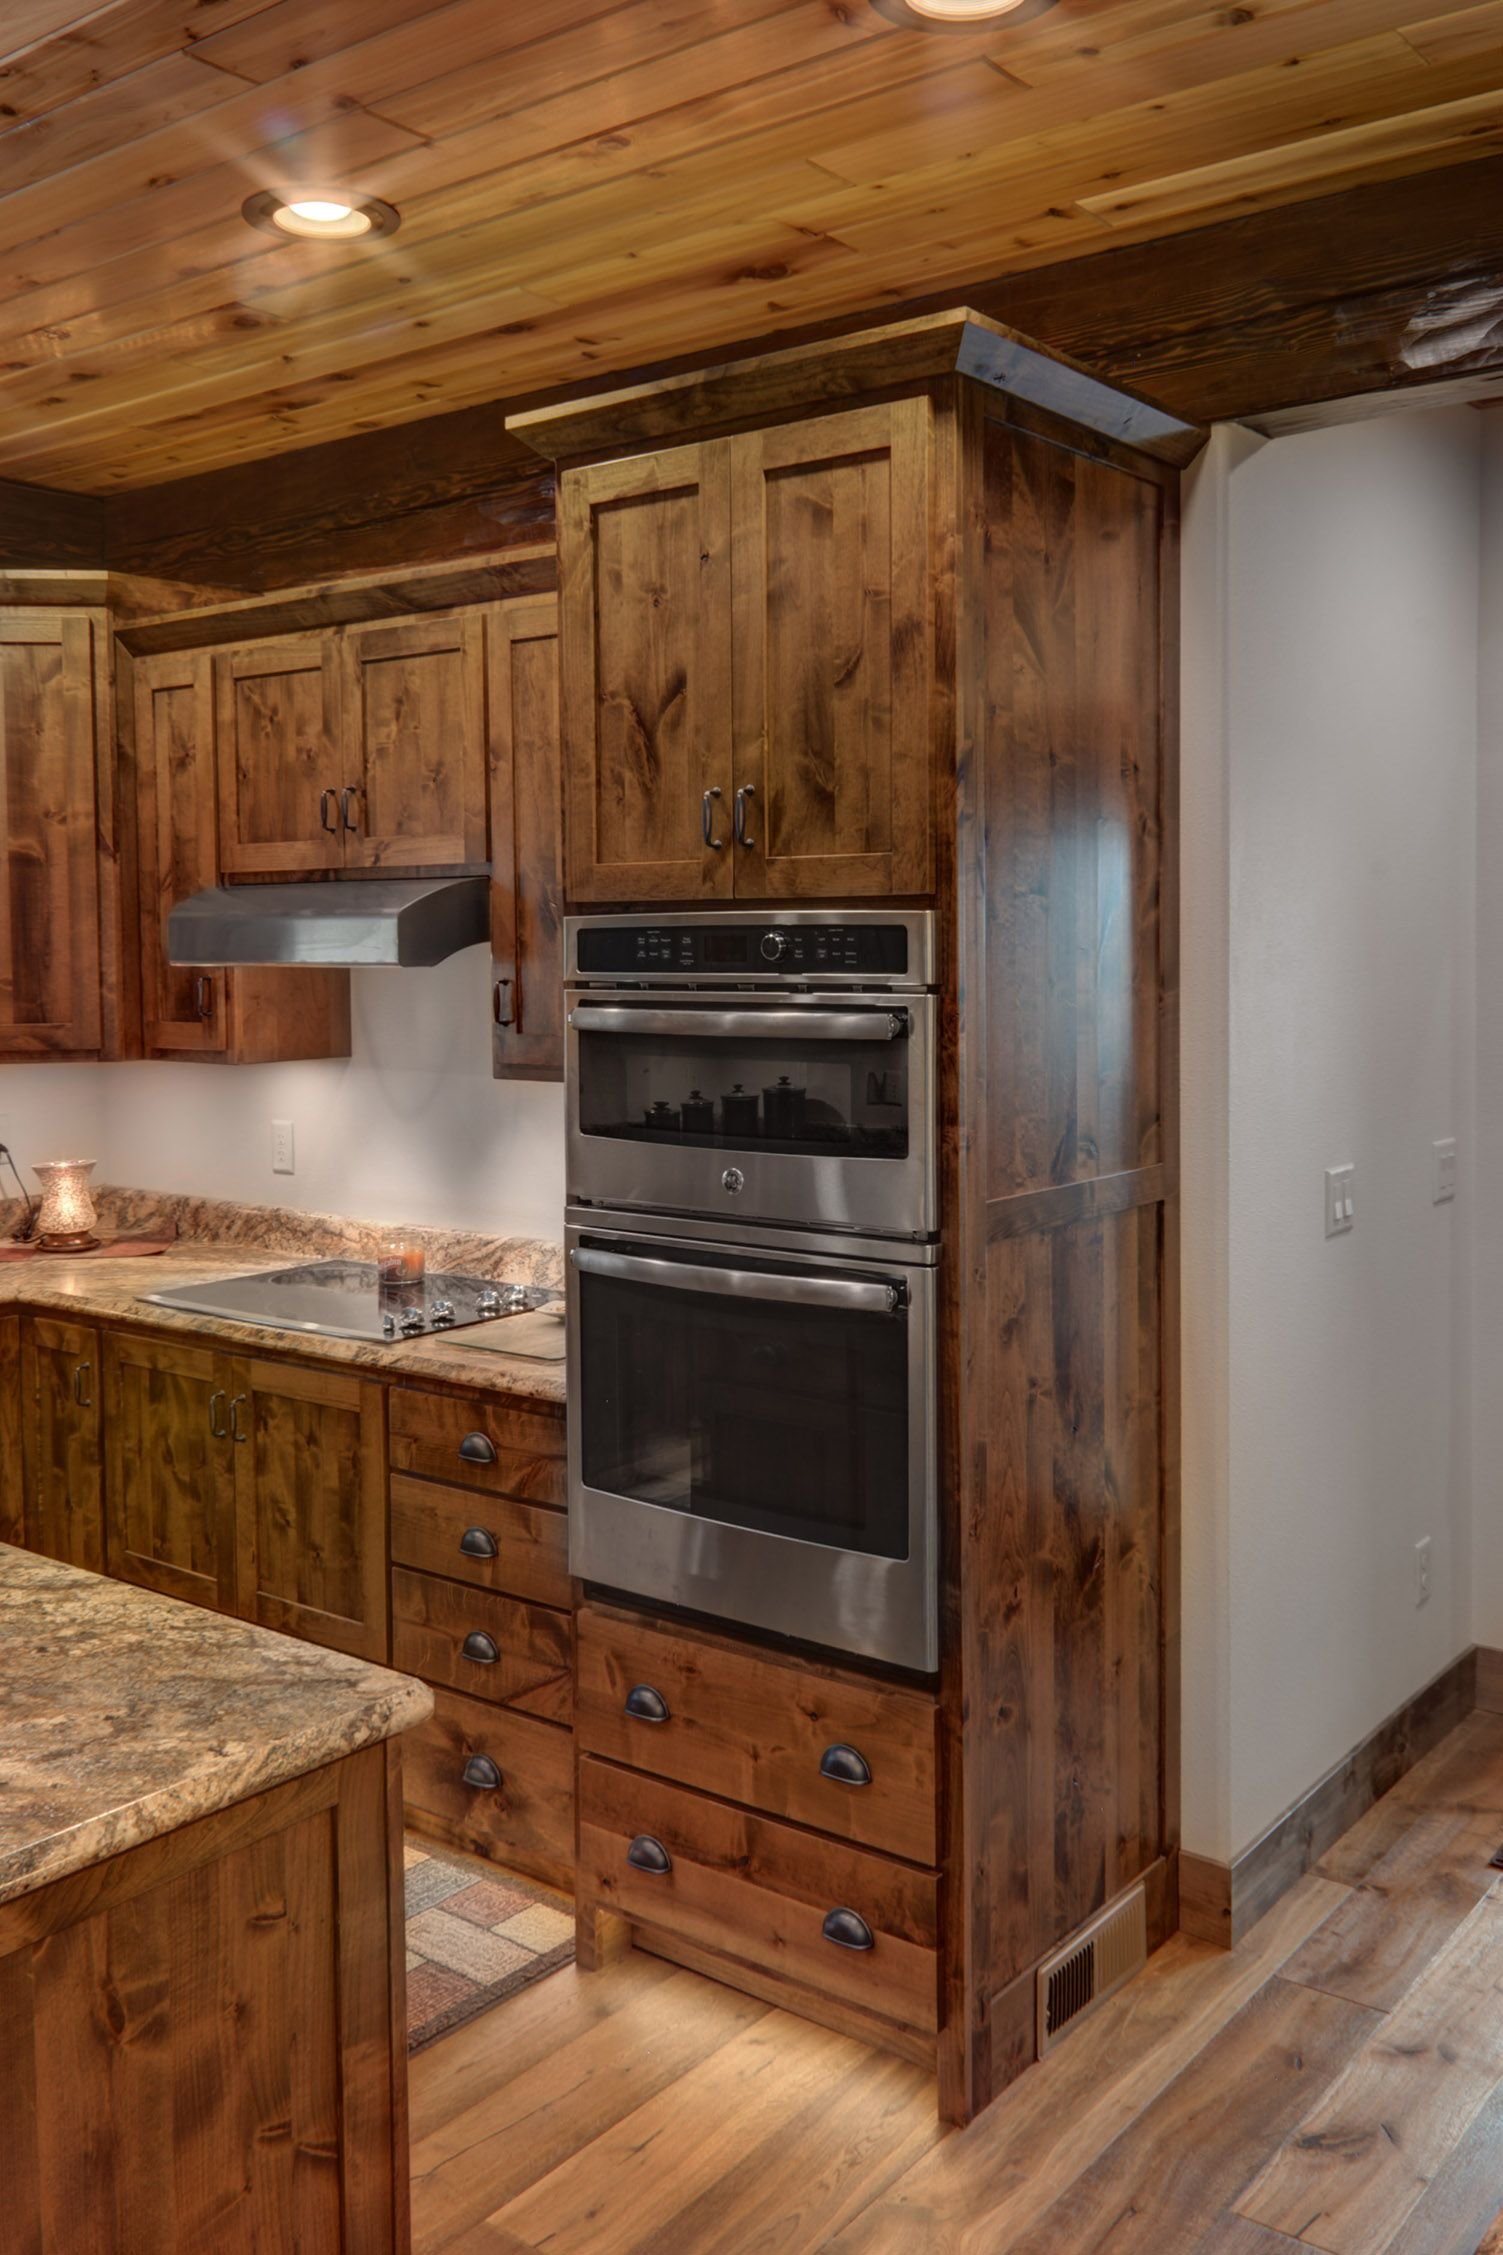 Rustic Alder Double Oven Cabinet | Rustic kitchen cabinets ...